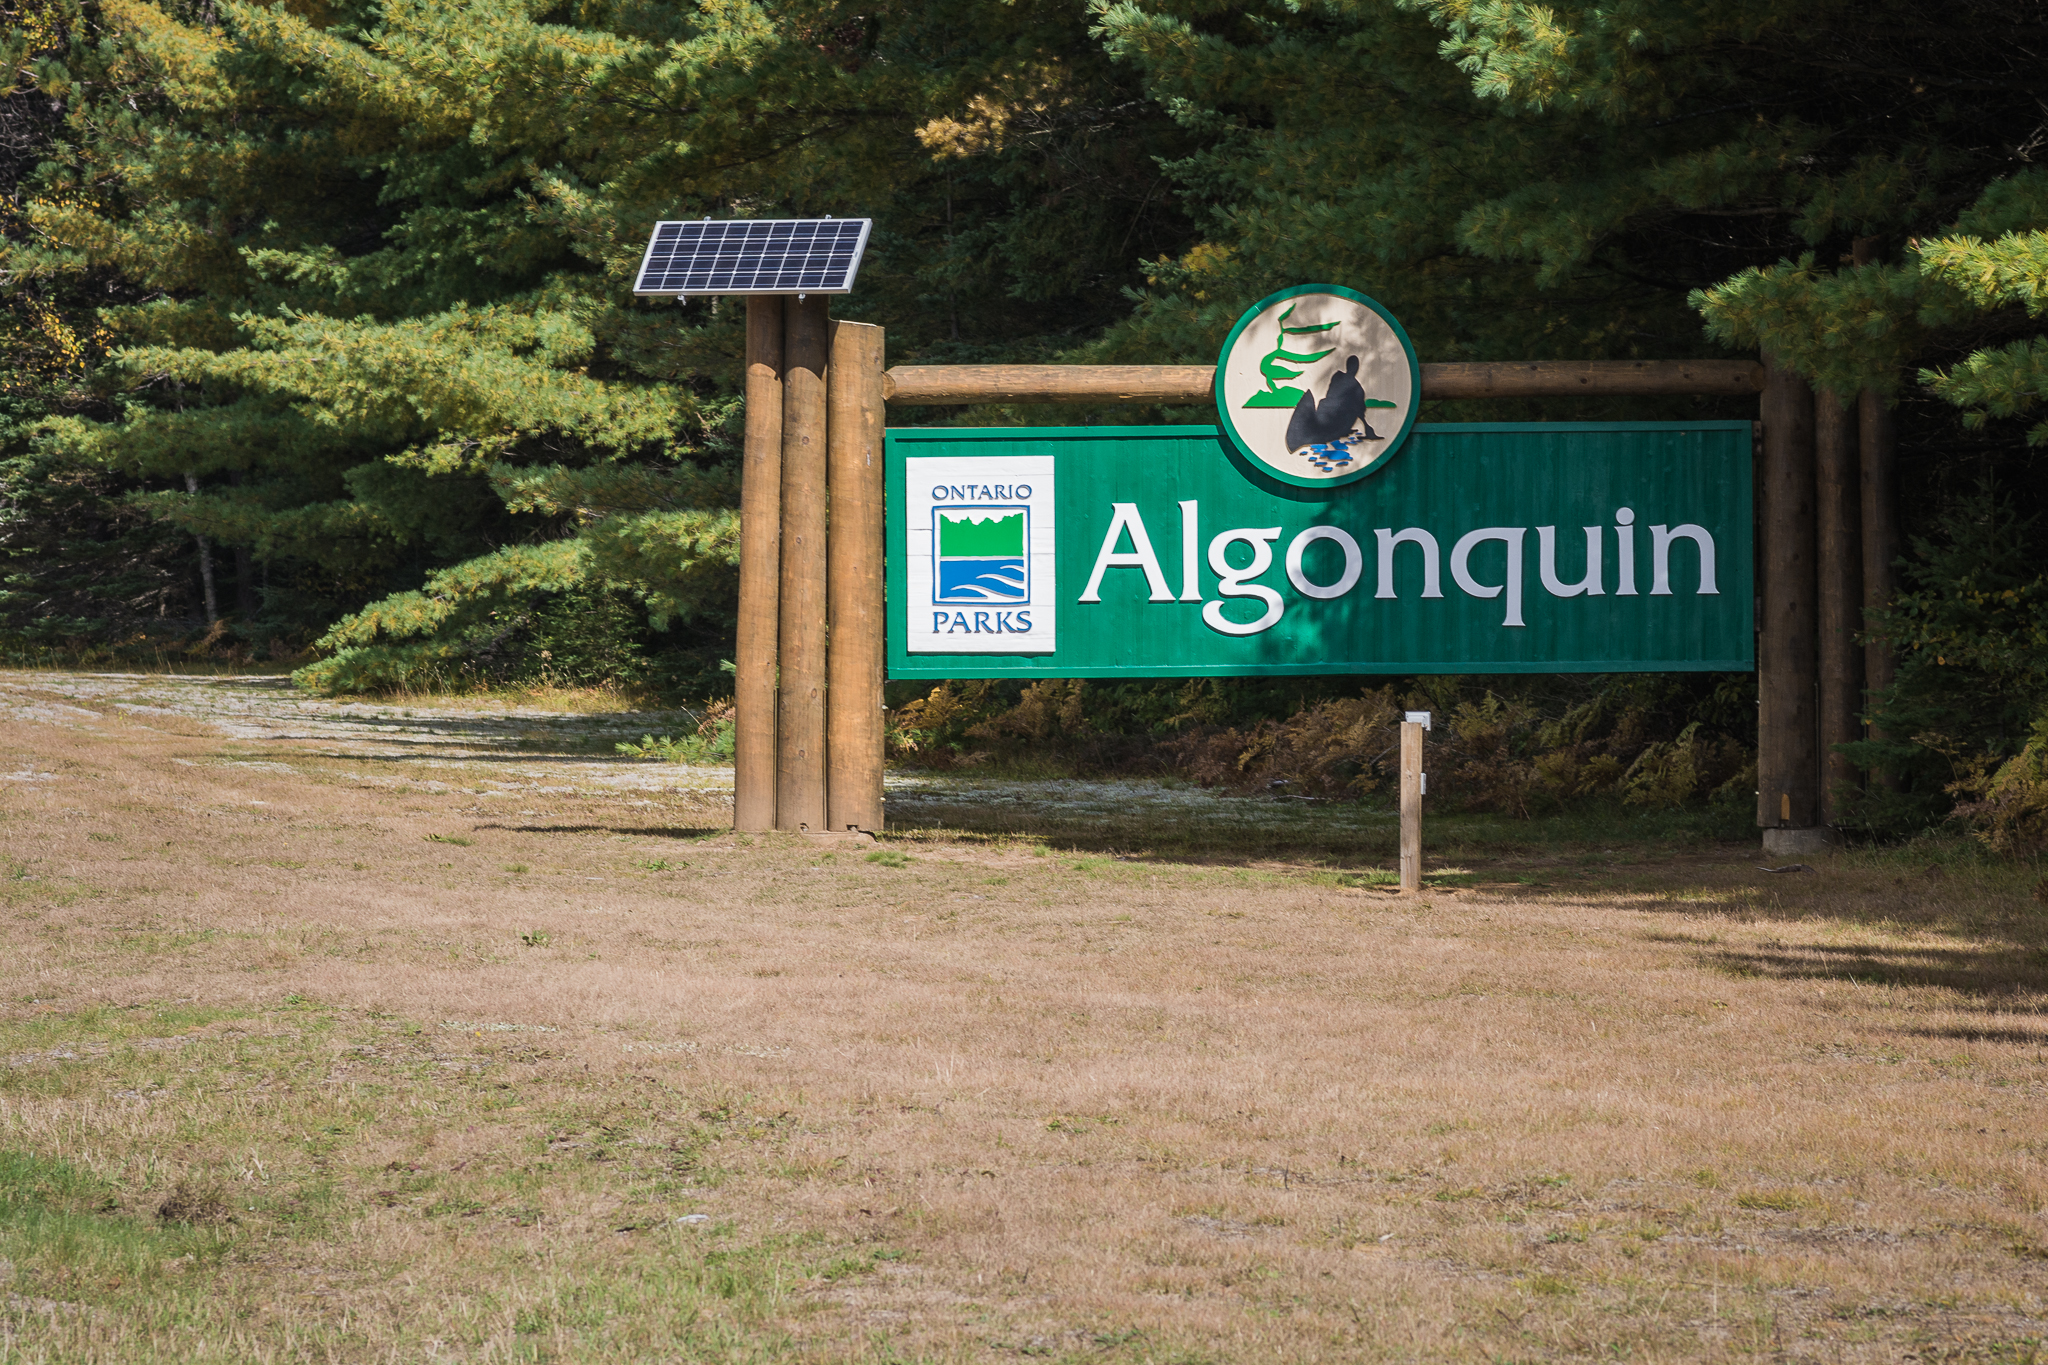 Algonquin Provincial Park (1/125s, f/8, ISO200)